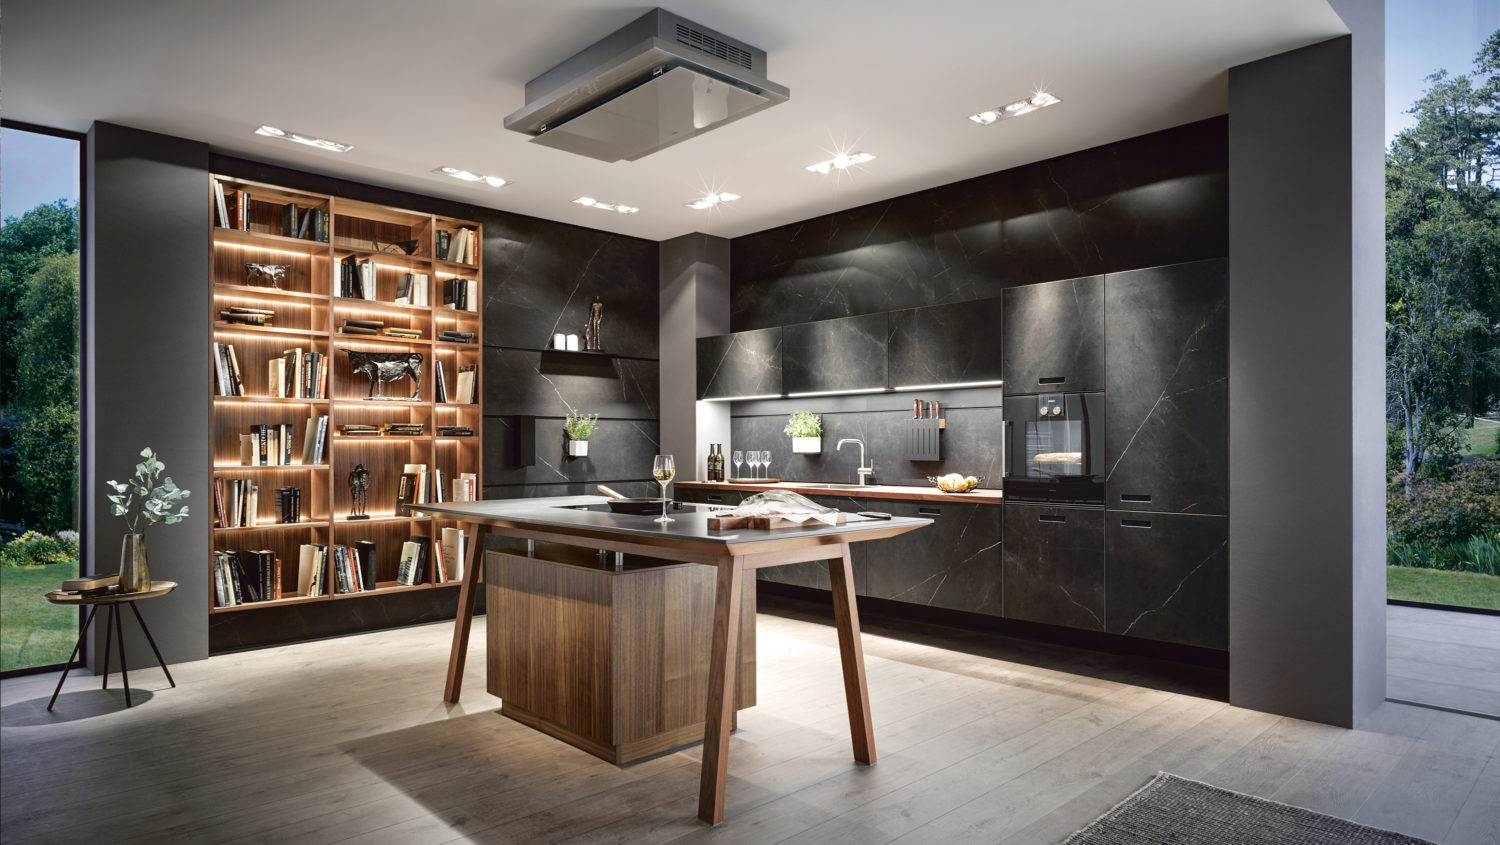 Nero kitchen by next125 premium kitchen by Schüller, Germany. Featuring Cooking Table and Cube system